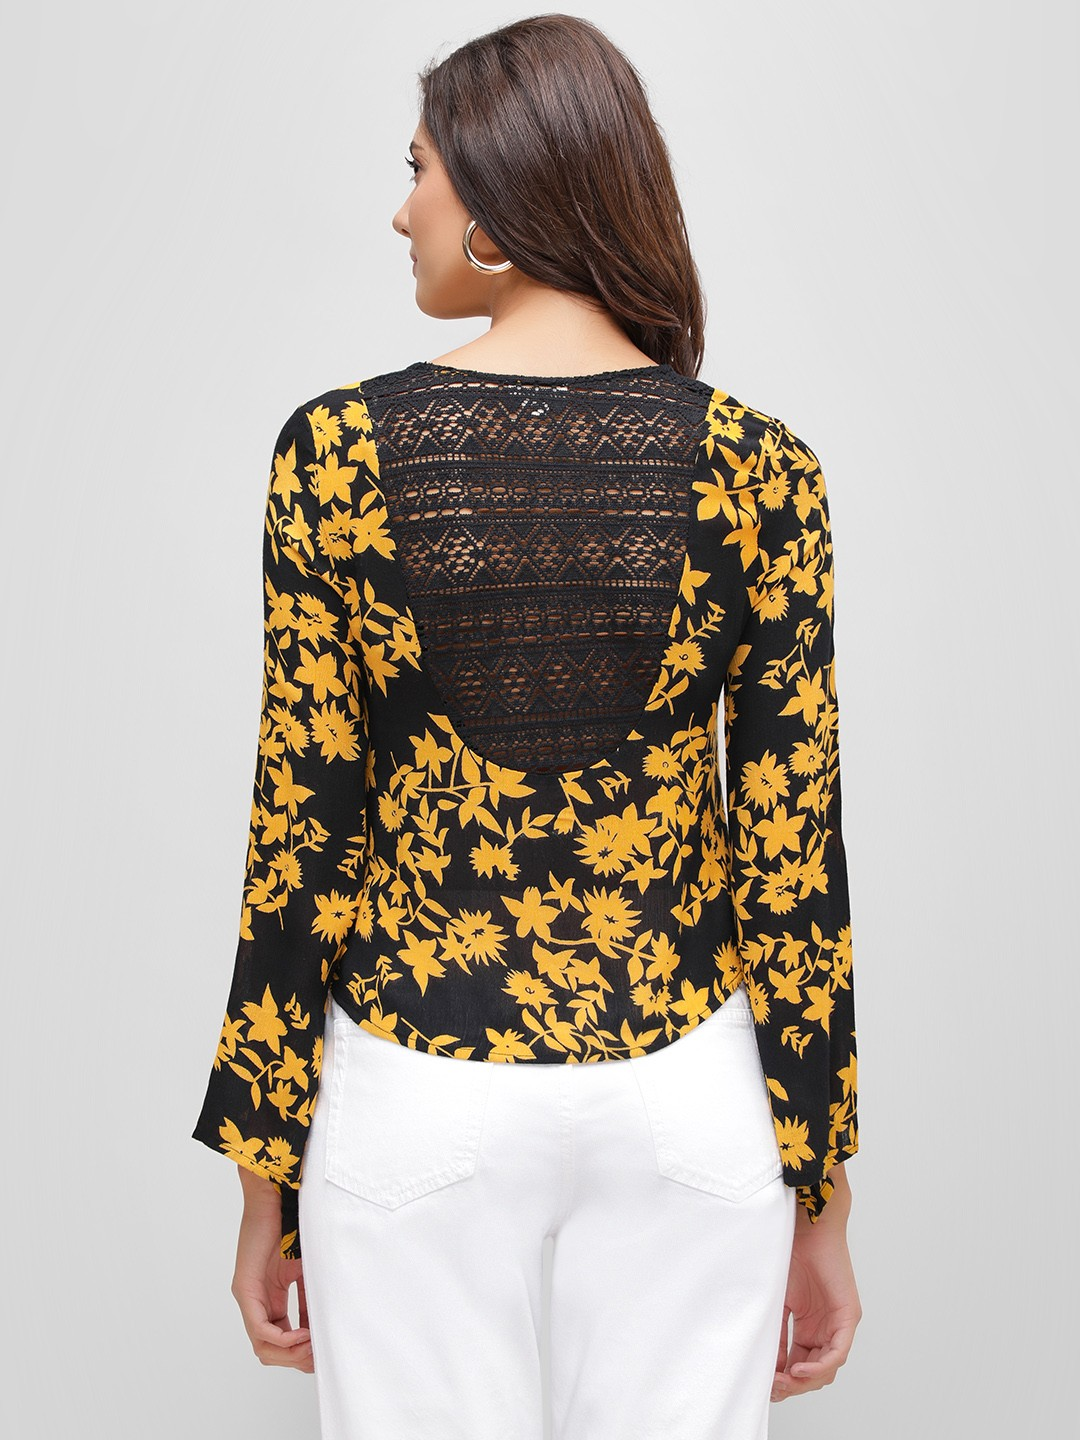 Kisscoast Multi Lace Back Floral Printed Blouse 1